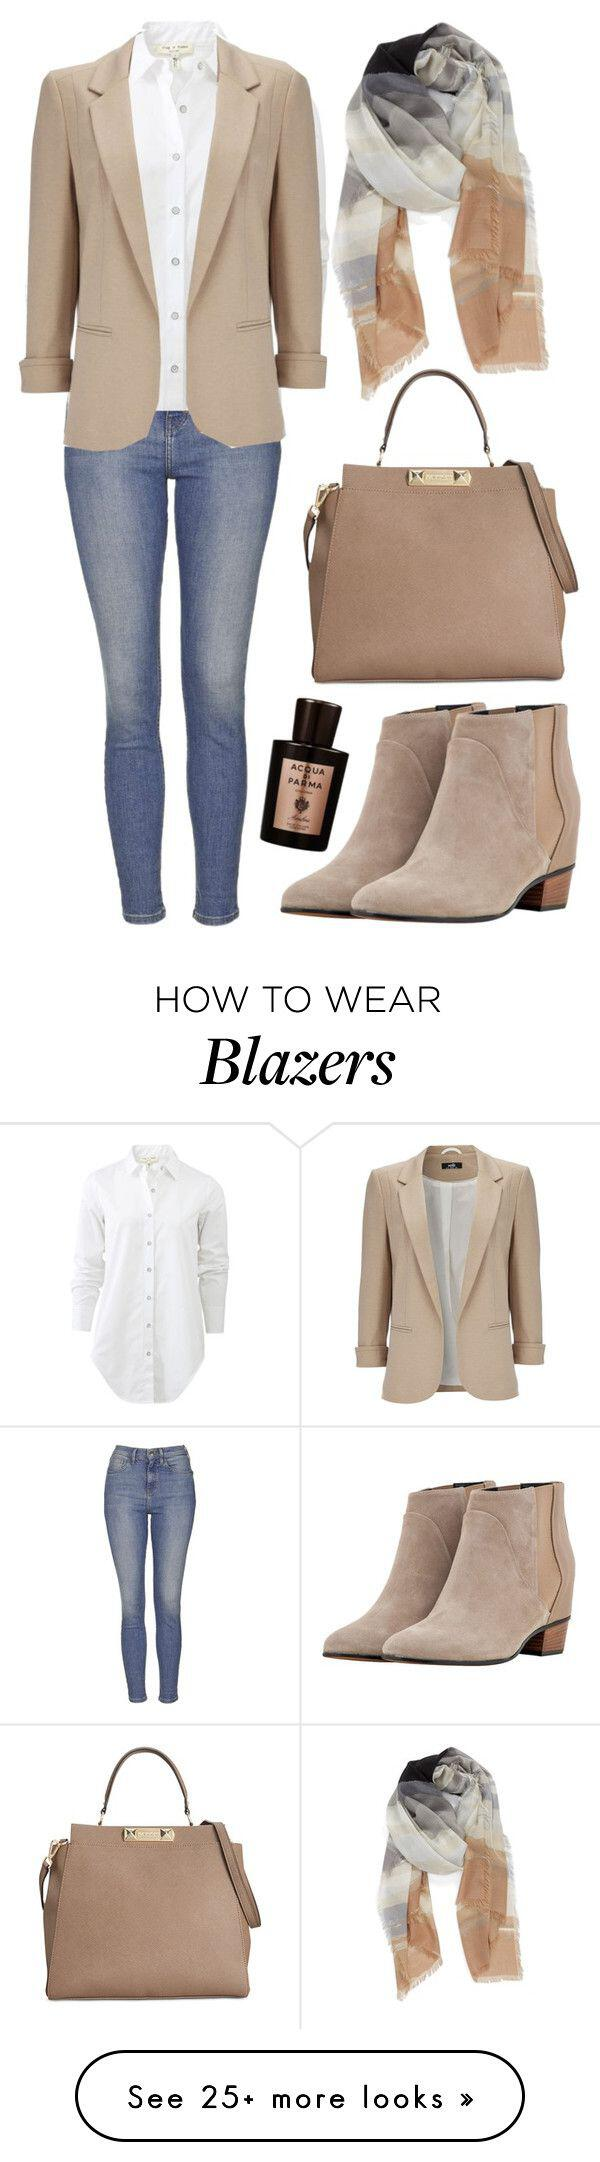 12 stylish beige blazer fall outfits you can also wear - 12 stylish beige blazer fall outfits you can also wear